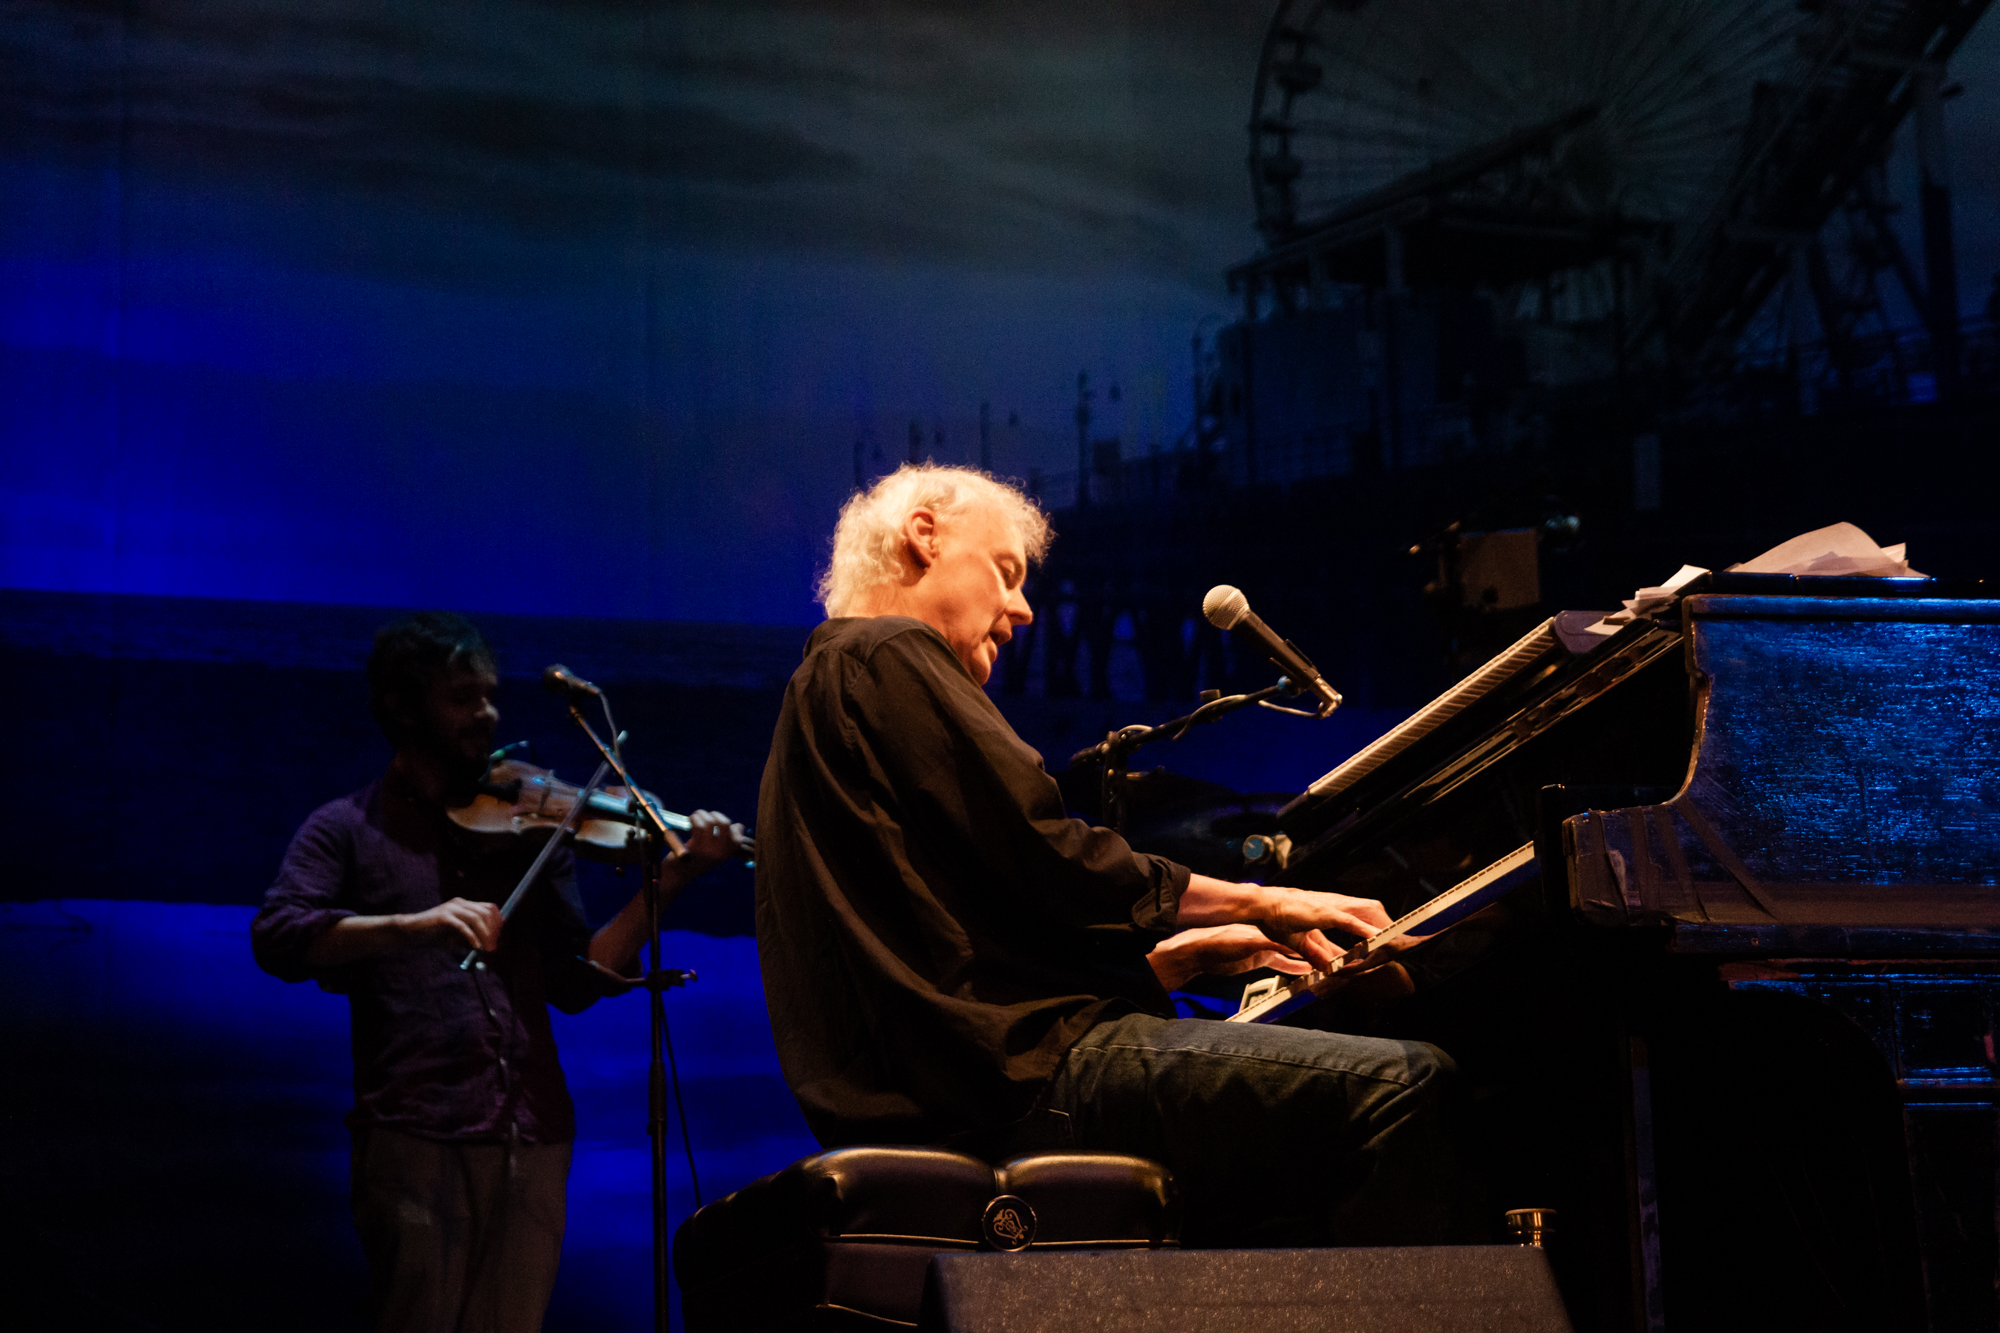 Bruce Hornsby performing at Pabst Theater in Milwaukee, WI - 8/7/19 (Photo - Kevin Hill)